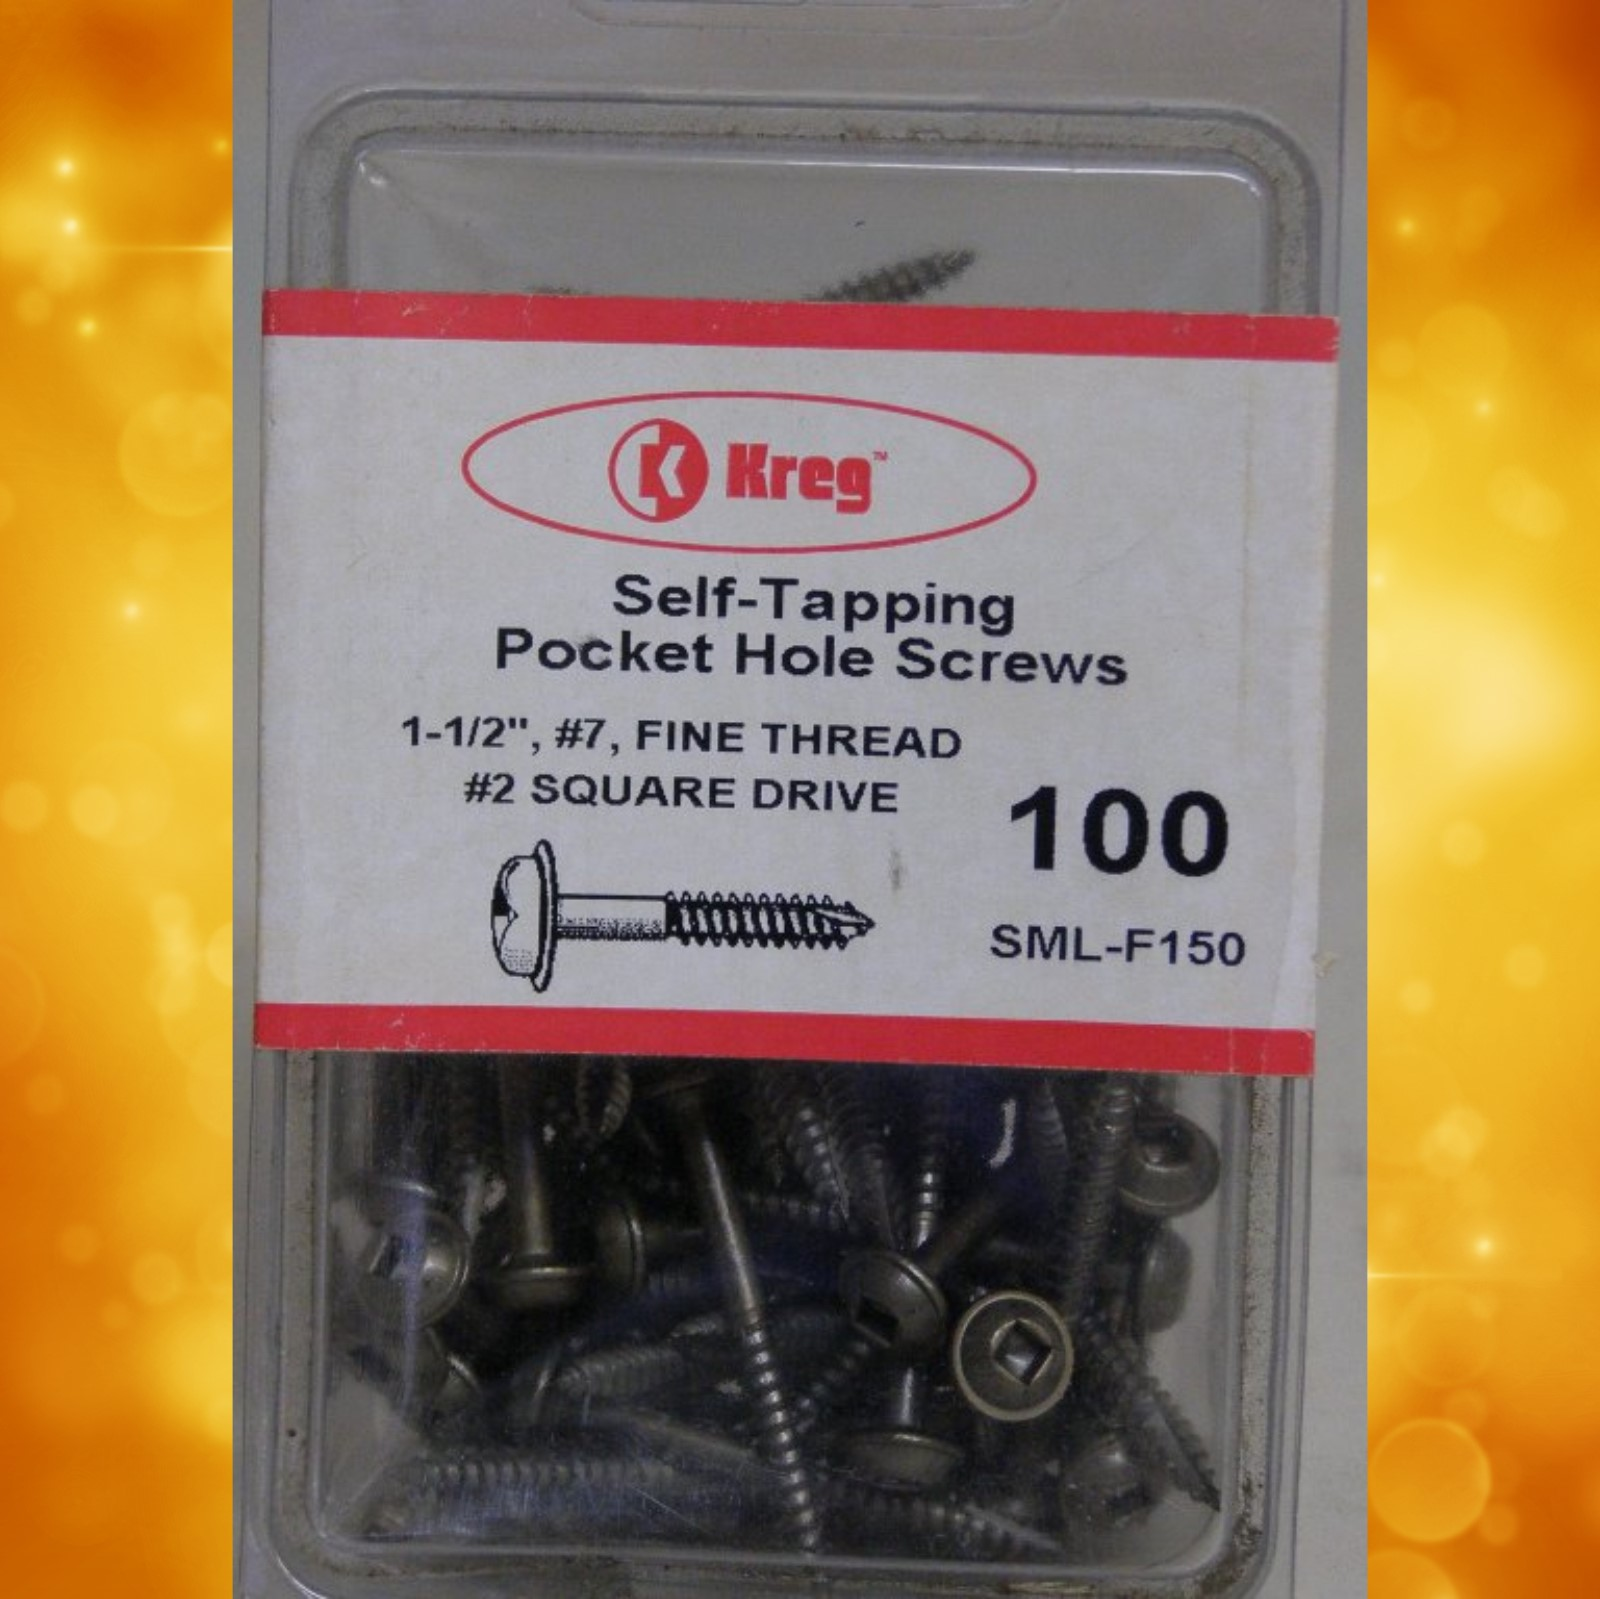 "Kreg Pocket Hole Screws SML-F150-100 Kreg 1-1/2"" #7, Self-Tapping, Fine-Thread, Washer Head, 100 count SML-F150-100"